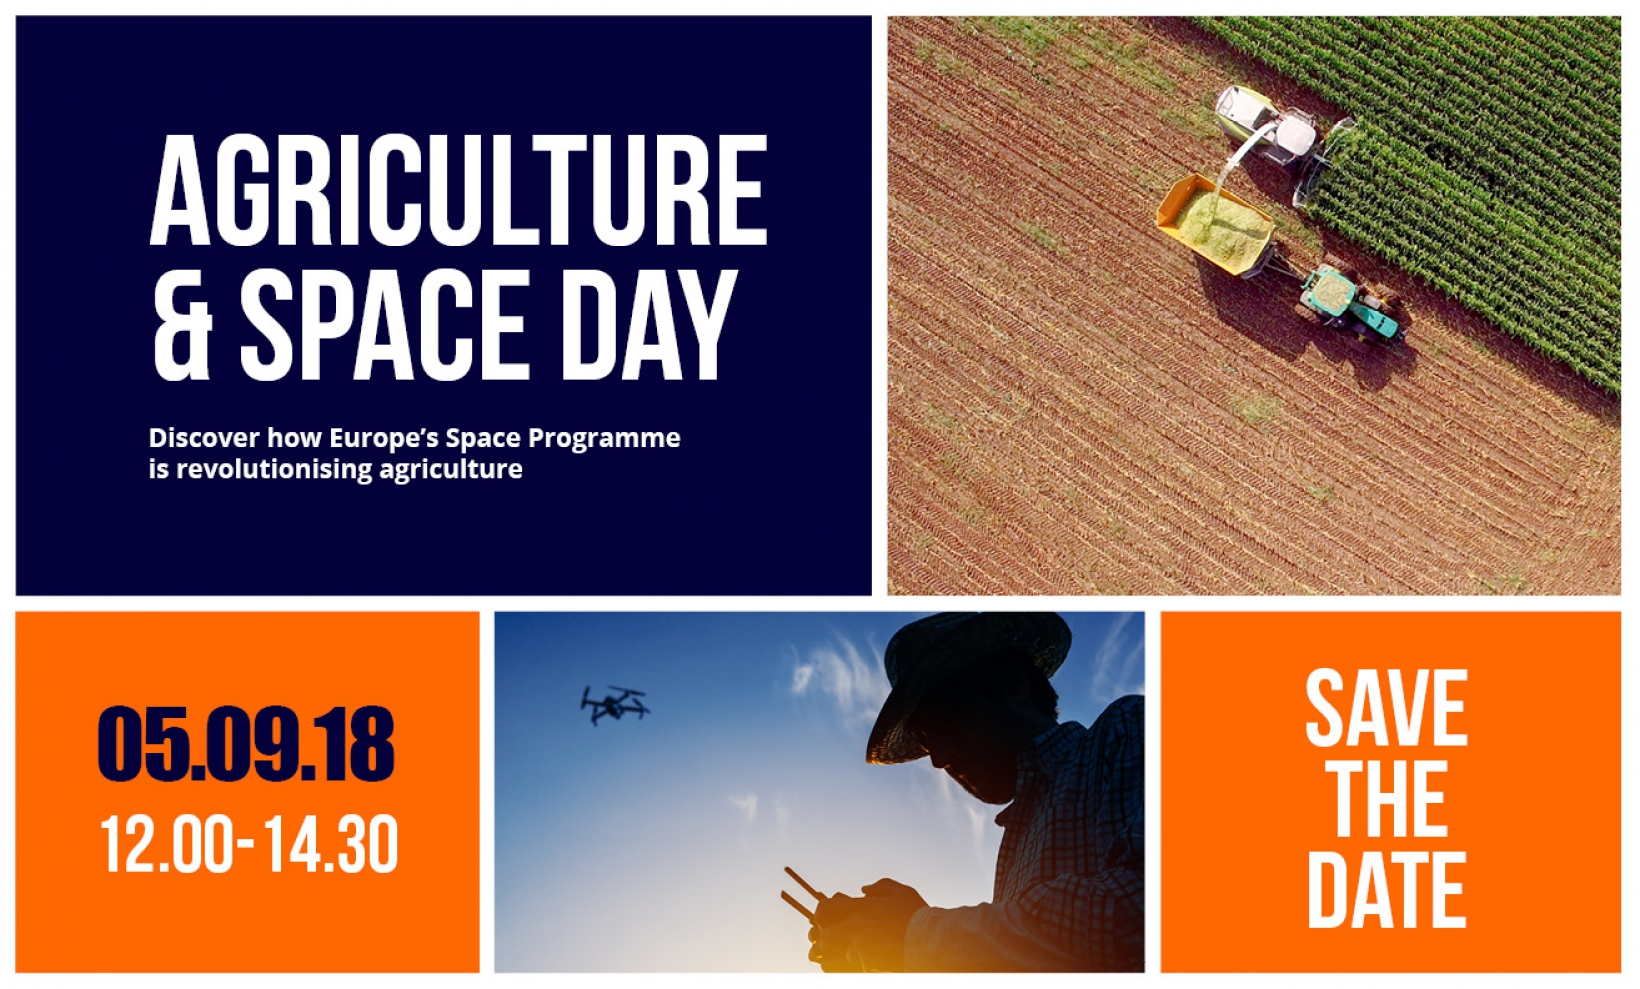 Agriculture and Space Day – showcasing how EU space programmes are revolutionising agriculture